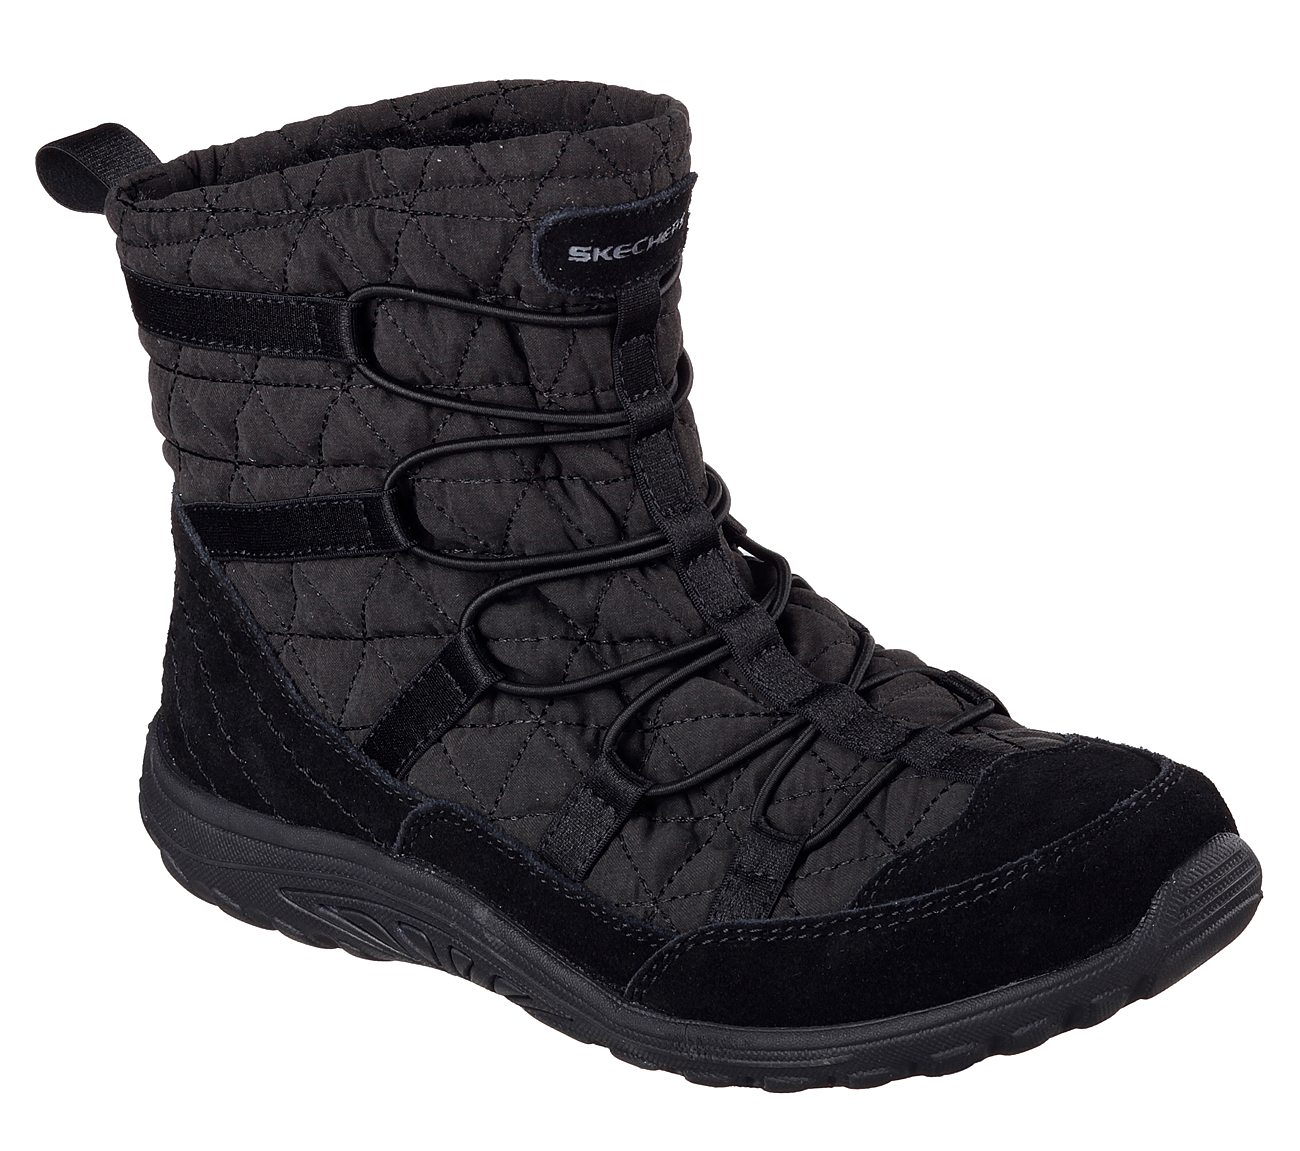 76deea4b04c58 Buy SKECHERS Relaxed Fit: Reggae Fest - Steady Ankle Boots Shoes ...